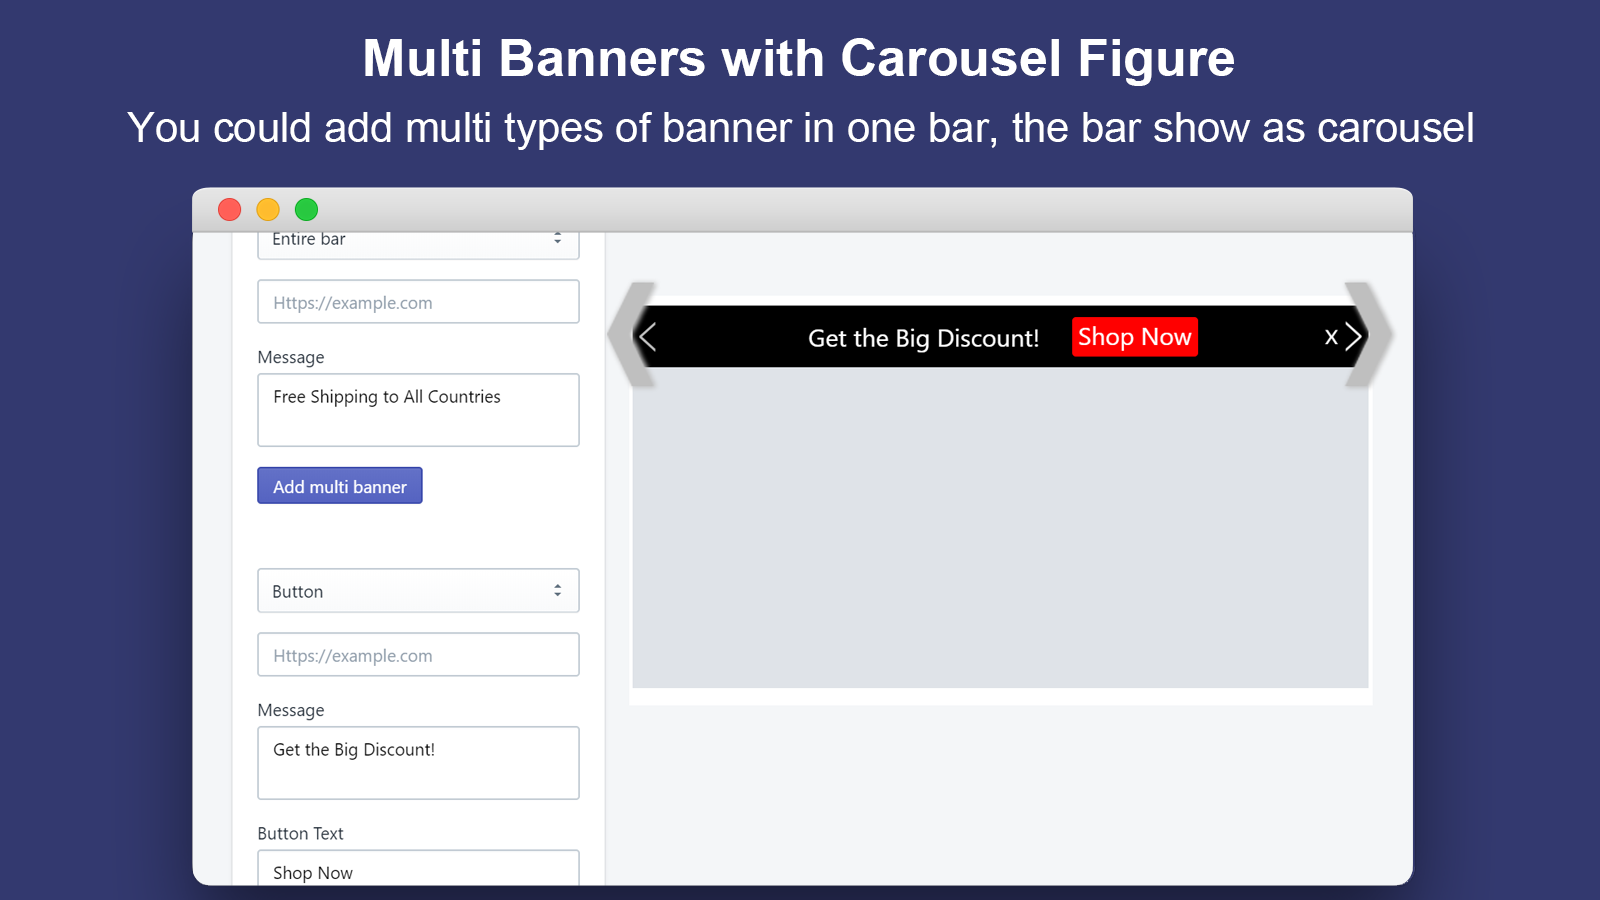 Multi Banners with Carousel Figure_Announcement Bar&GDPR Consent